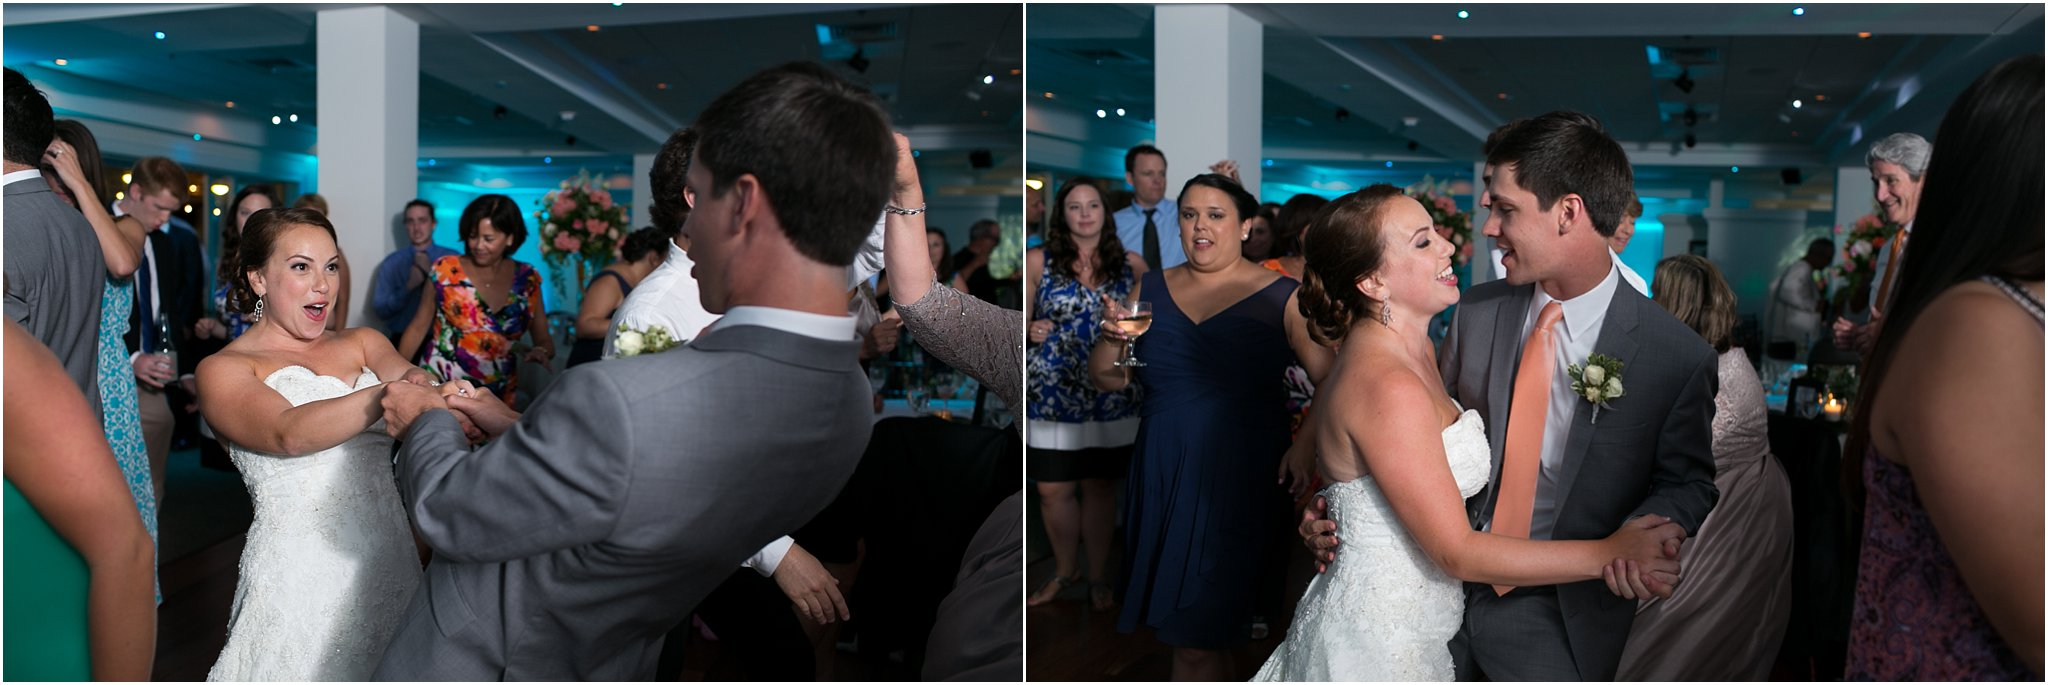 jessica_ryan_photography_wedding_photography_virginiabeach_virginia_candid_authentic_wedding_portraits_marina_shores_yacht_club_chesapeake_bay_1961